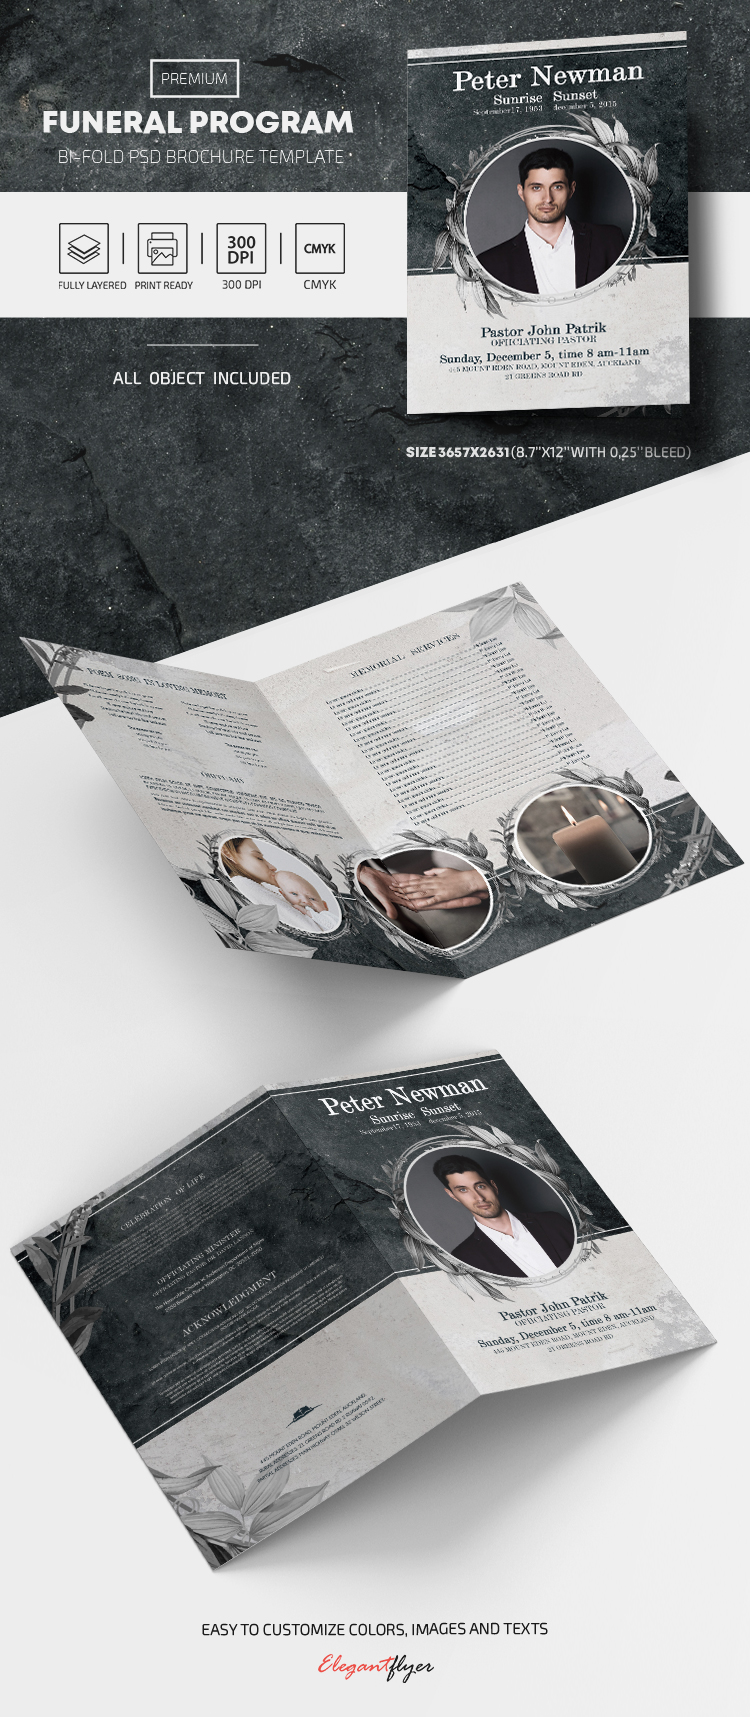 Funeral Program – PSD Bi-Fold Brochure Template